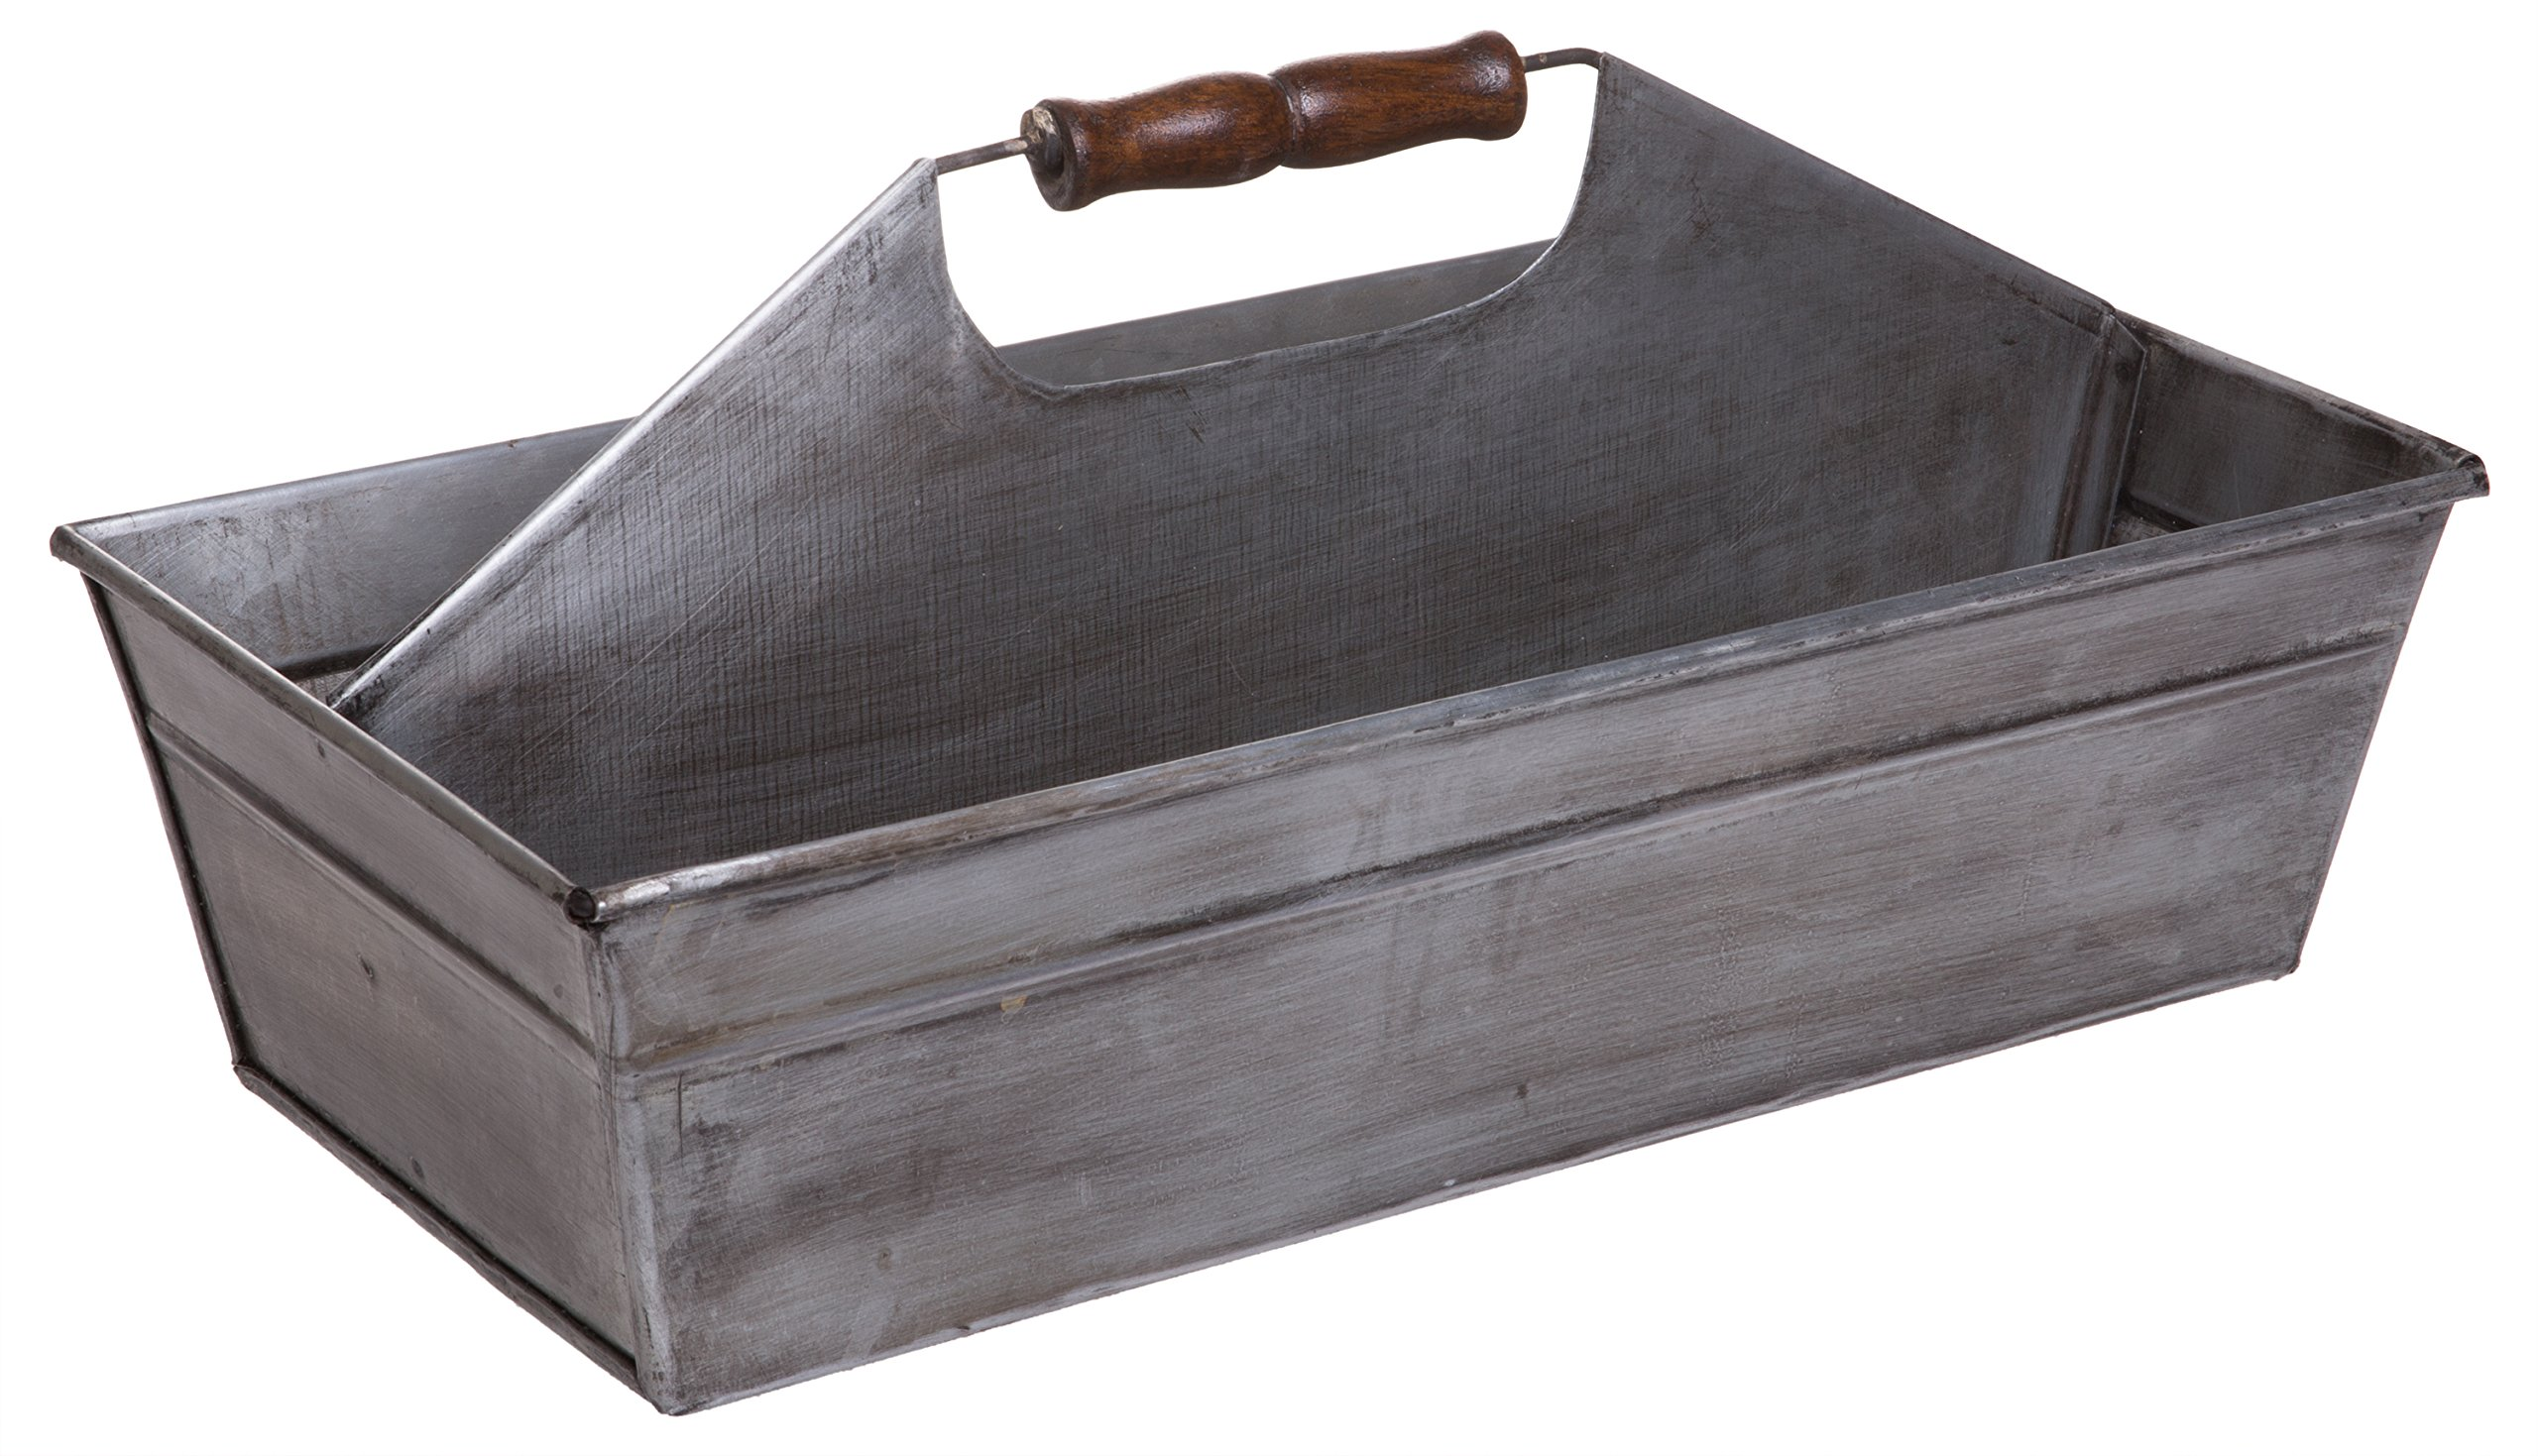 Rustic Metal Farmhouse Tote, Galvanized Storage Caddy Carry-All Tray with Wooden Handle, Large, 15-inch